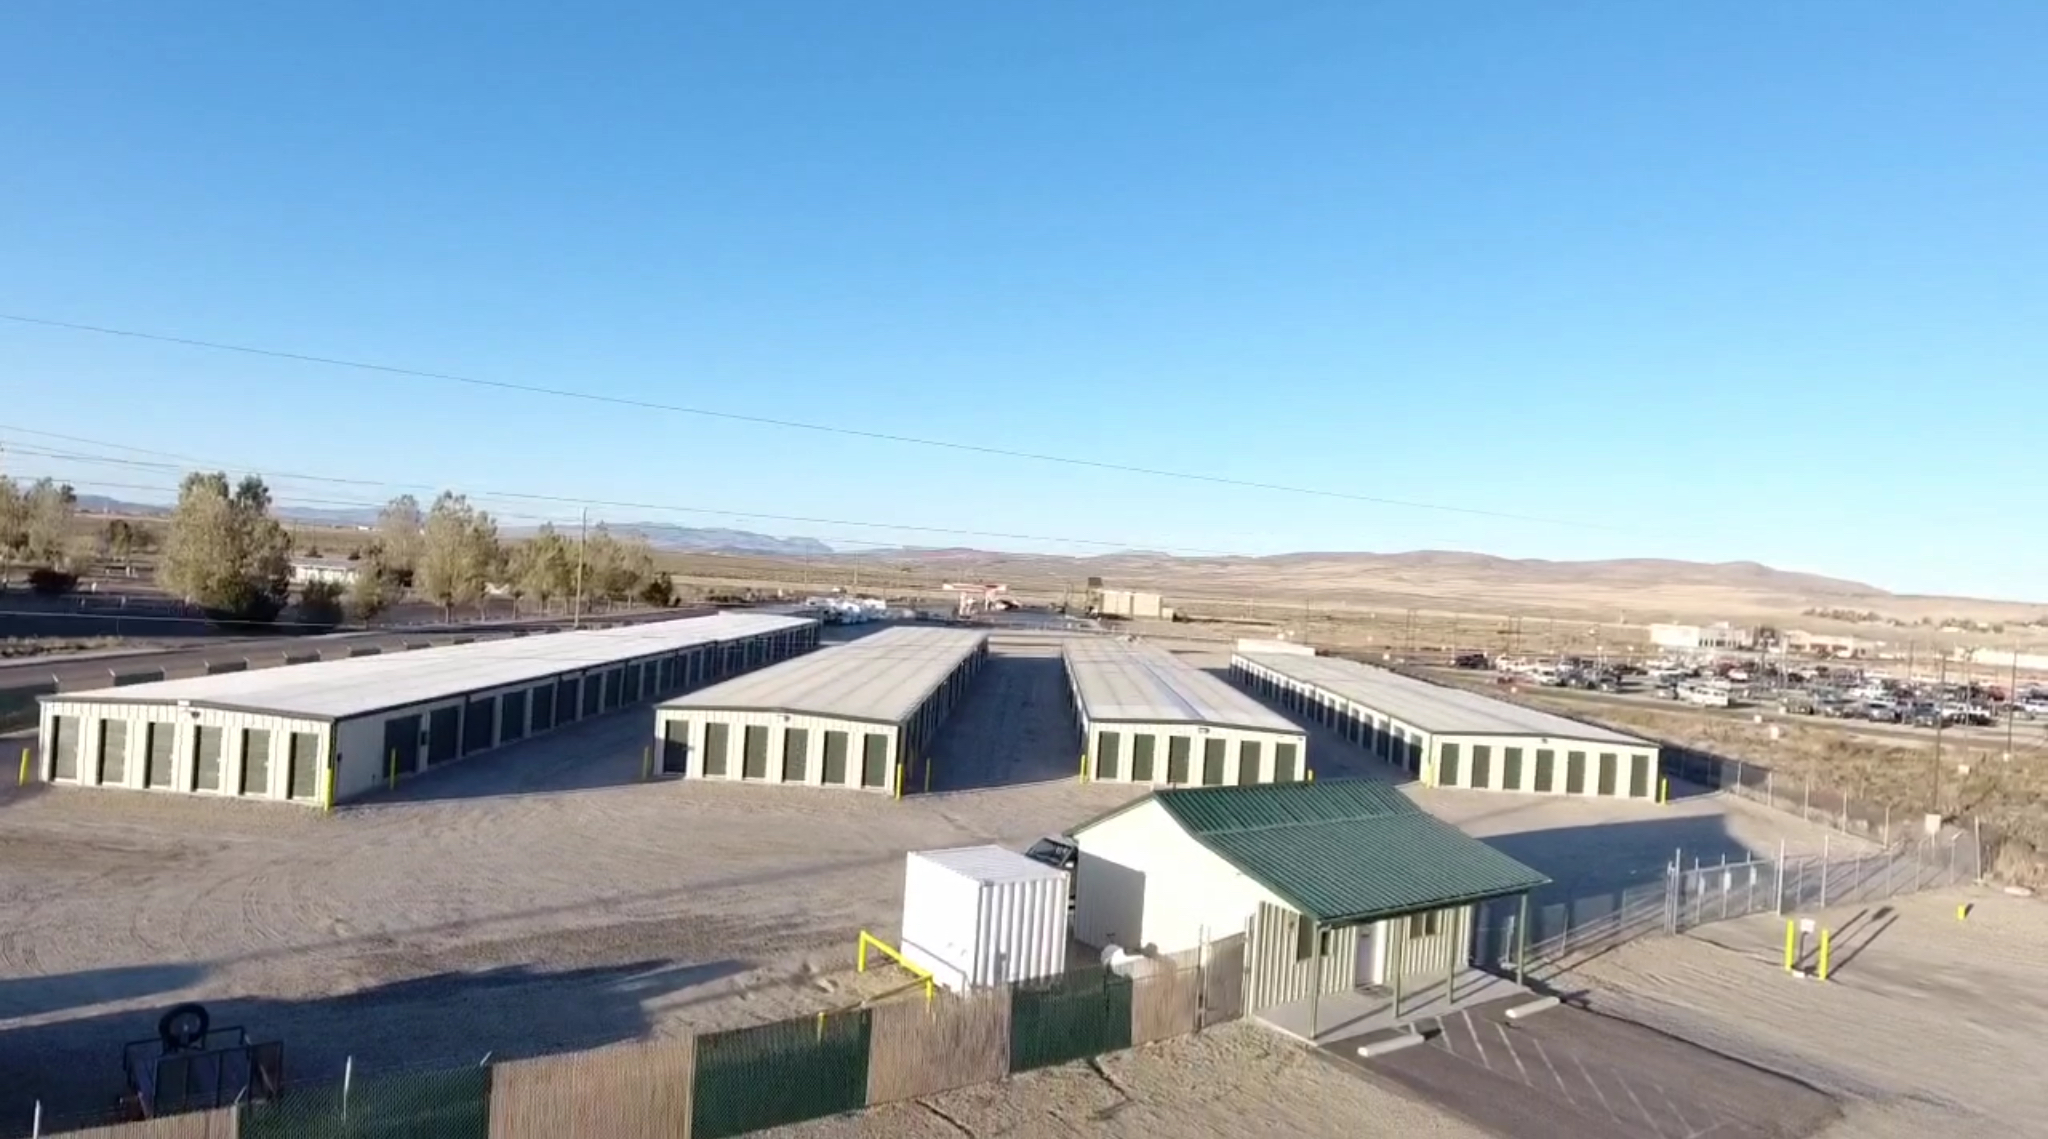 aeriel view of Spring Creek Self Storage. fenced and gated facility with multiple storage units